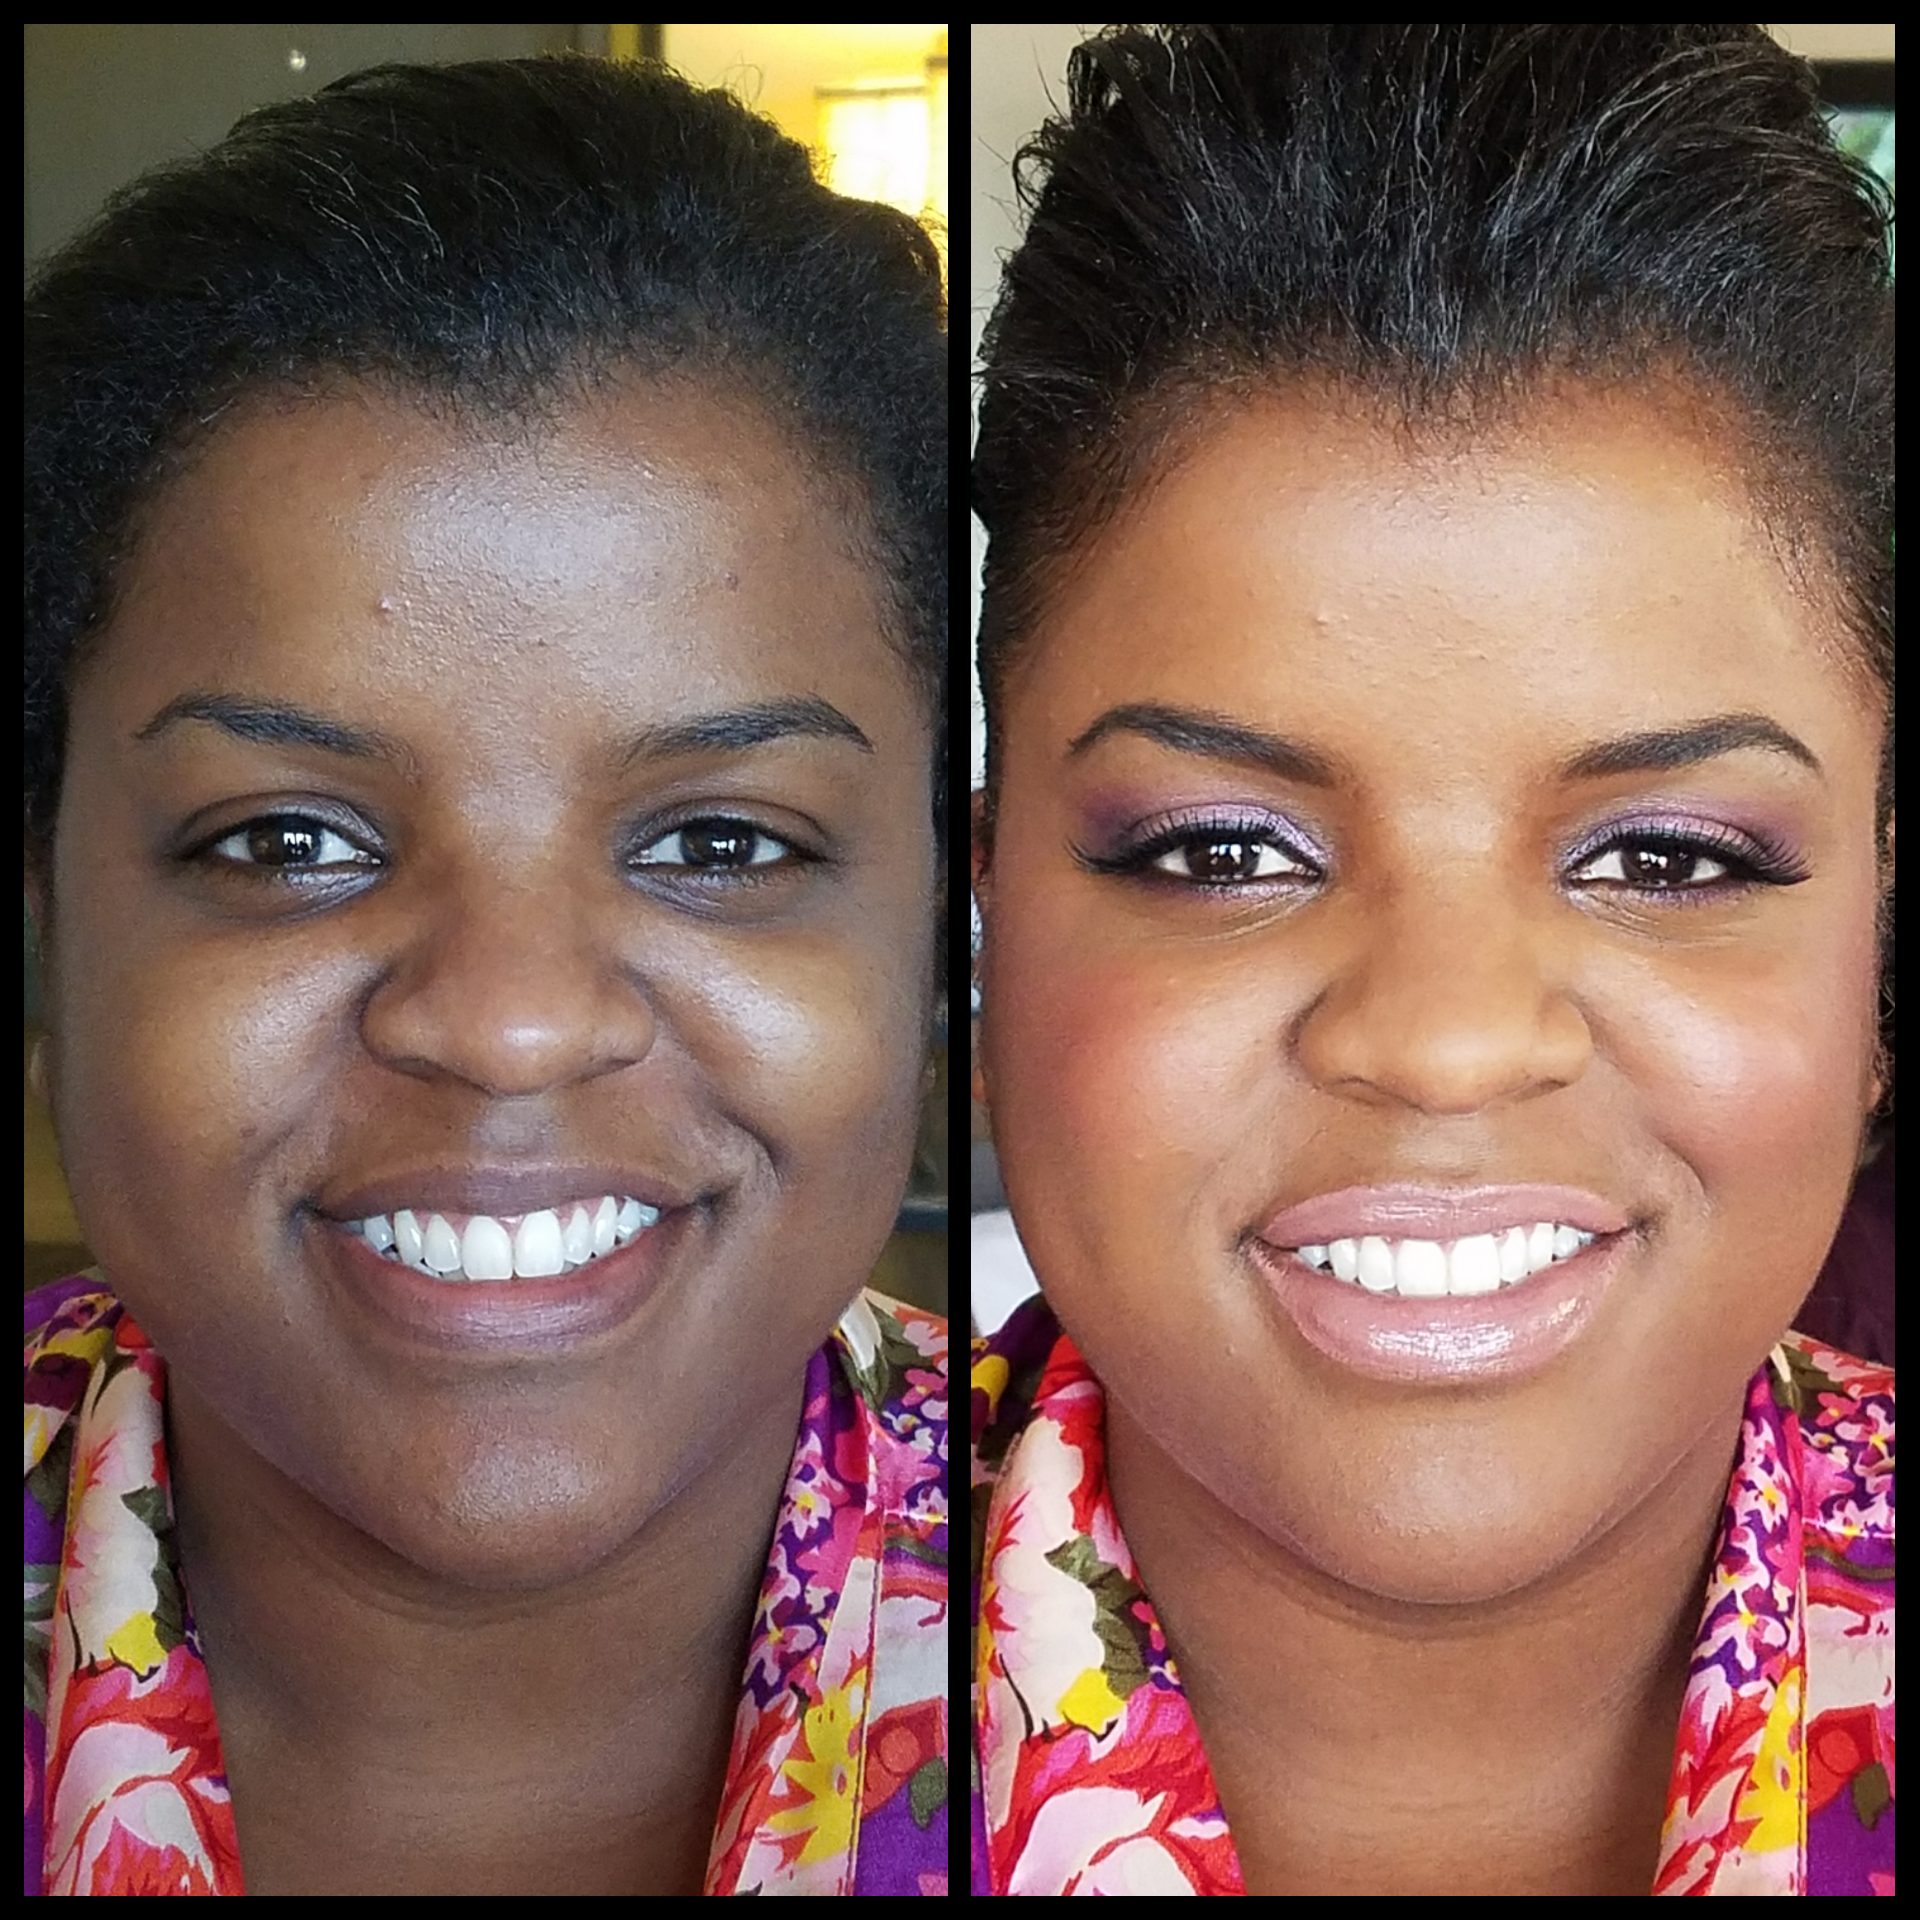 Defined Brows and Smokey Eyes. Bridesmaids Makeup with Lashes. Glowing African American Makeup Application. Luminous Beauty Makeup Artist..png